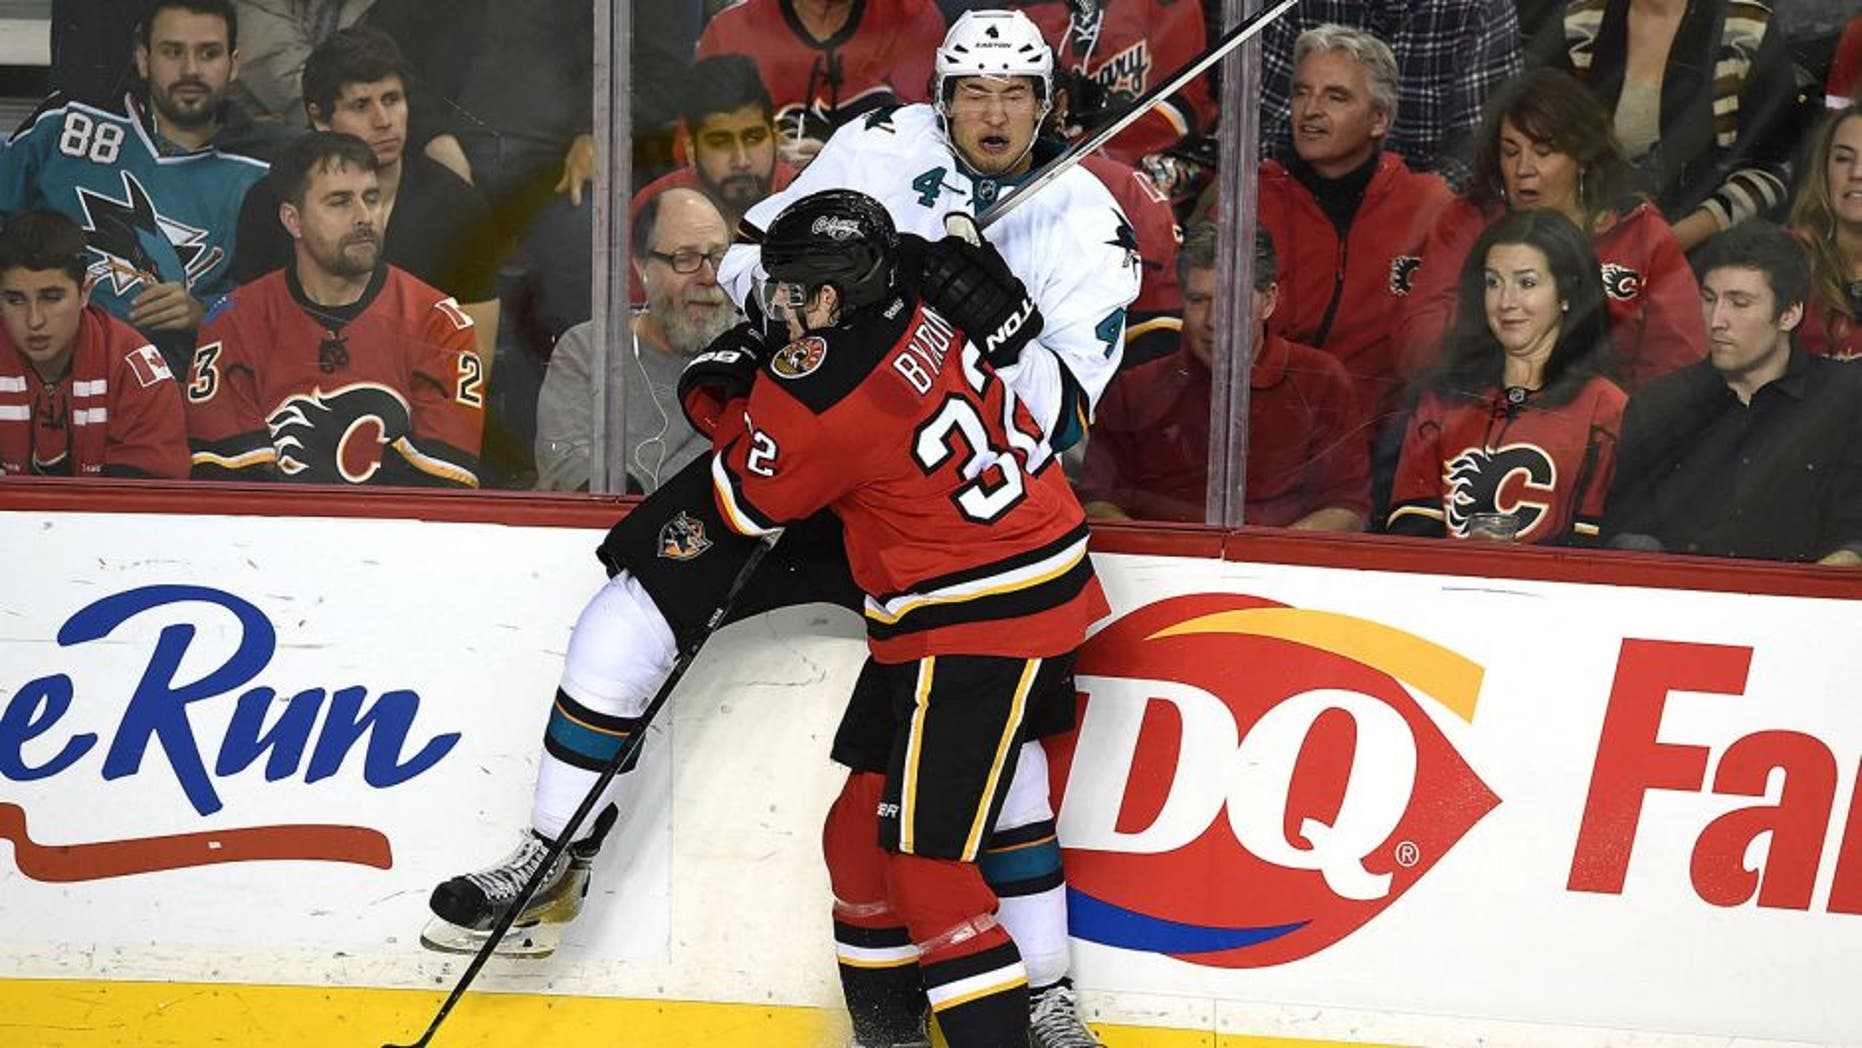 Dec 6, 2014; Calgary, Alberta, CAN; Calgary Flames center Paul Byron (32) checks San Jose Sharks defenseman Brenden Dillon (4) at Scotiabank Saddledome. Sharks won 3-2. Mandatory Credit: Candice Ward-USA TODAY Sports